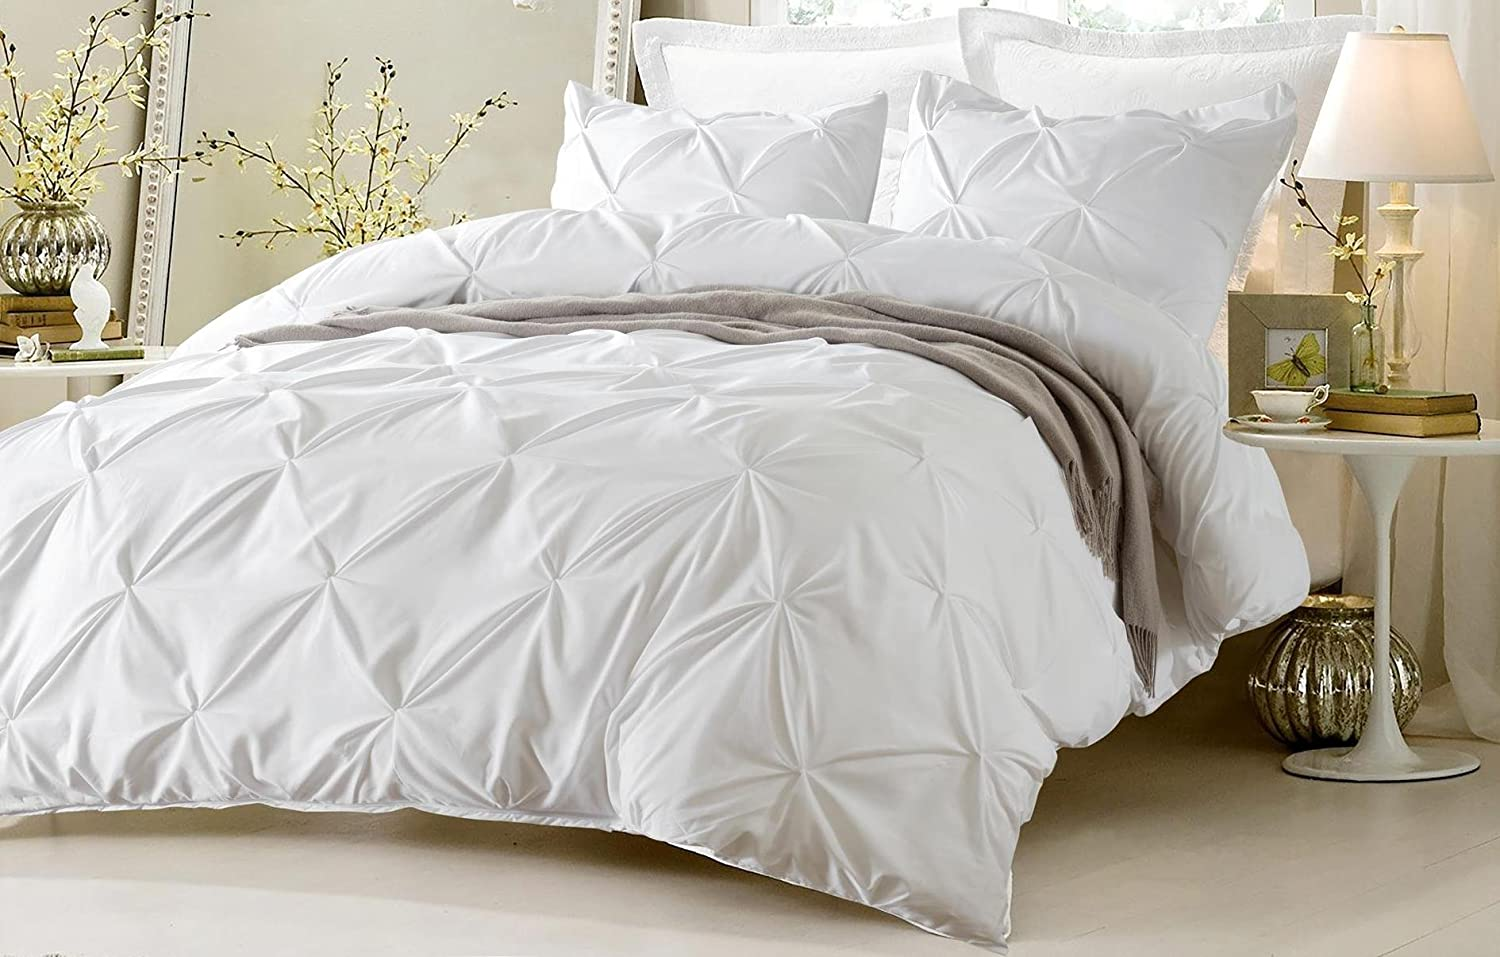 4pc Pinch Pleat Design White Bedding Set-Includes Comforter and Duvet Cover